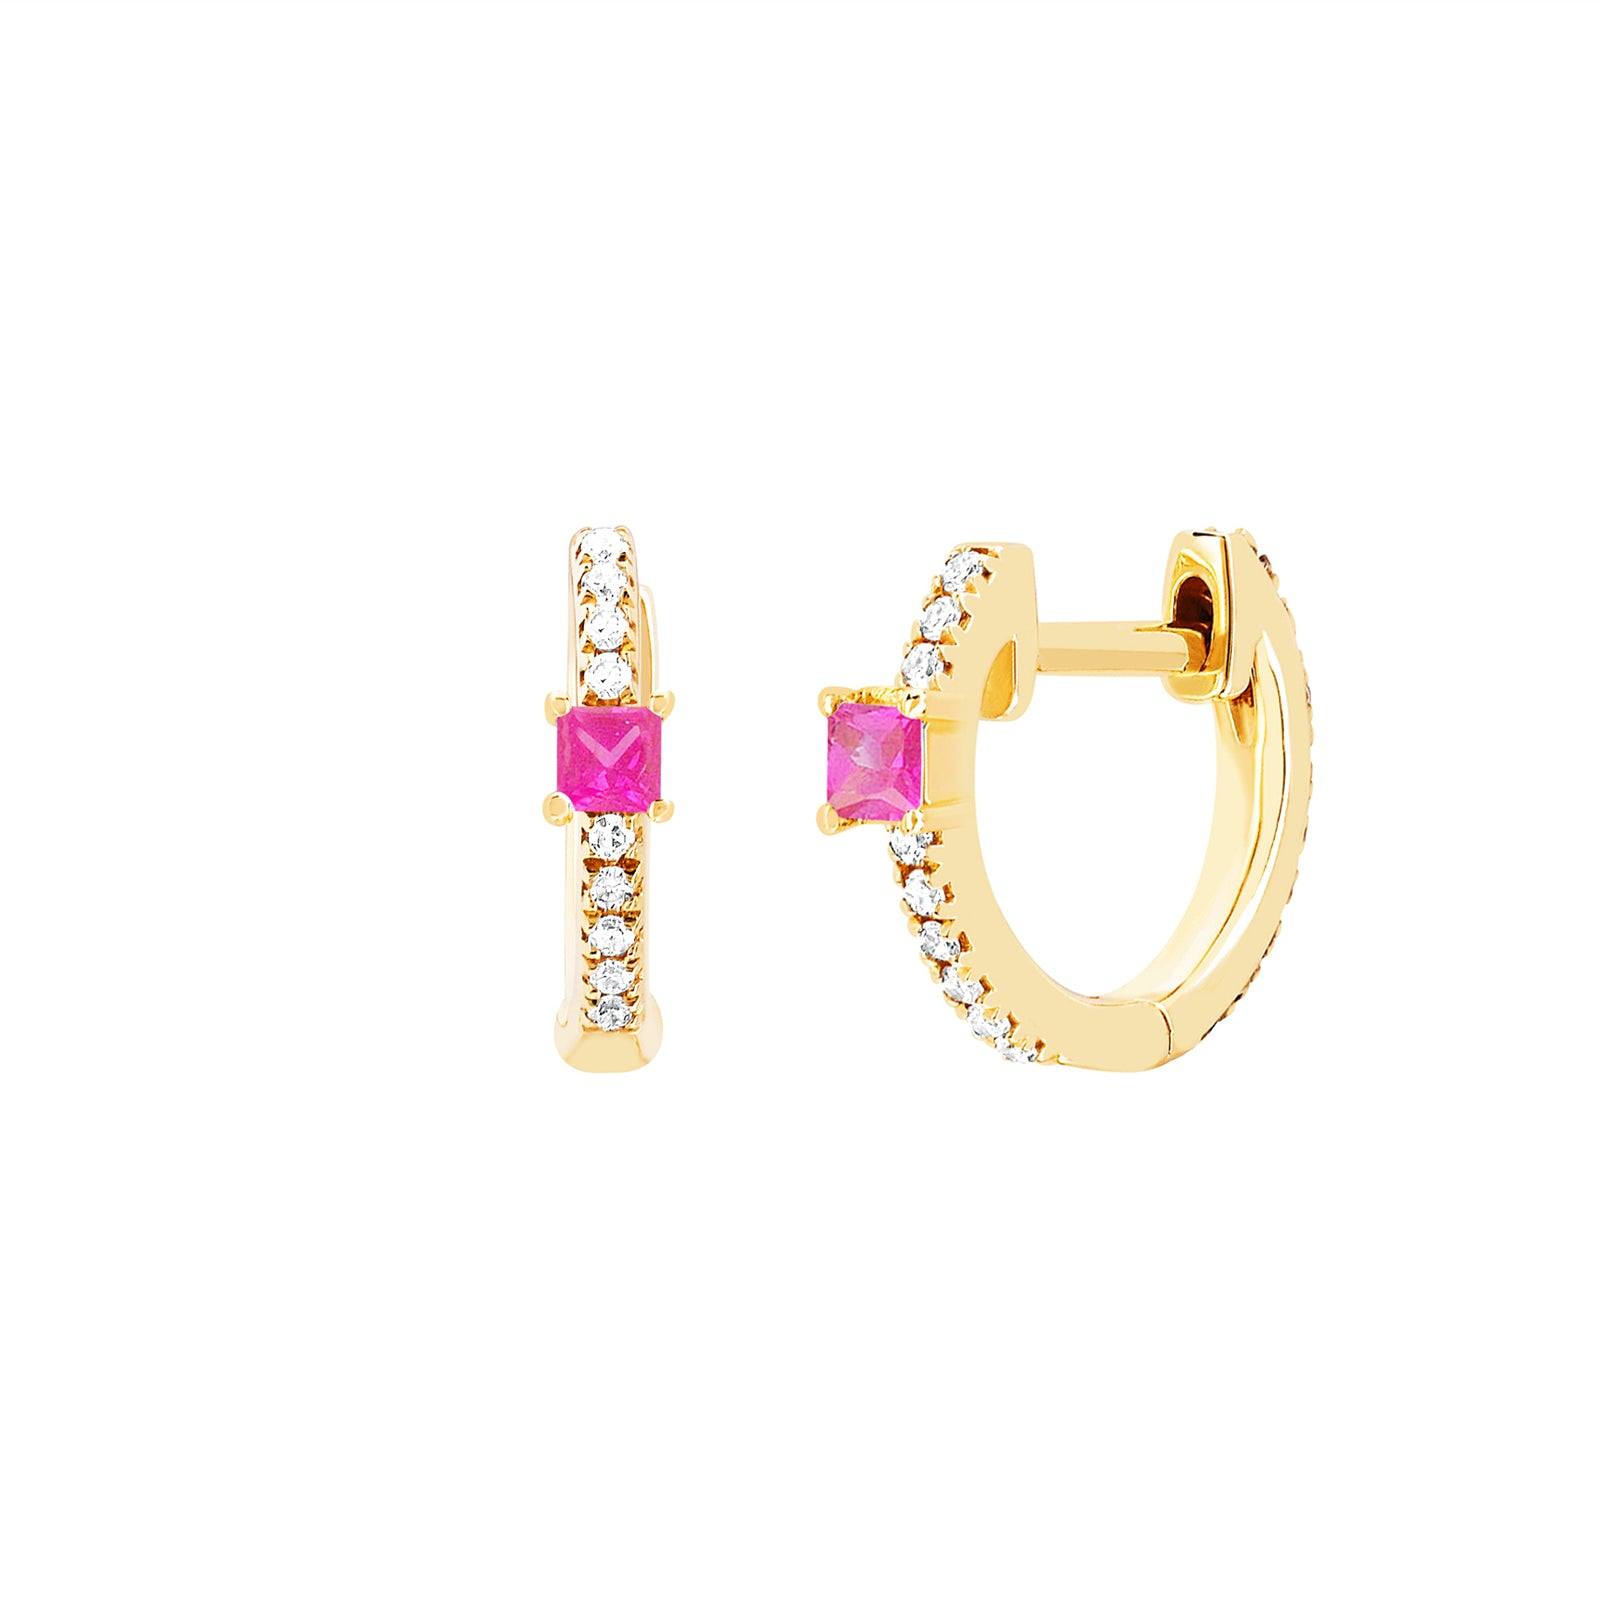 EF Collection Princess Pink Sapphire Mini Huggies - Yellow Gold - Earrings - Broken English Jewelry